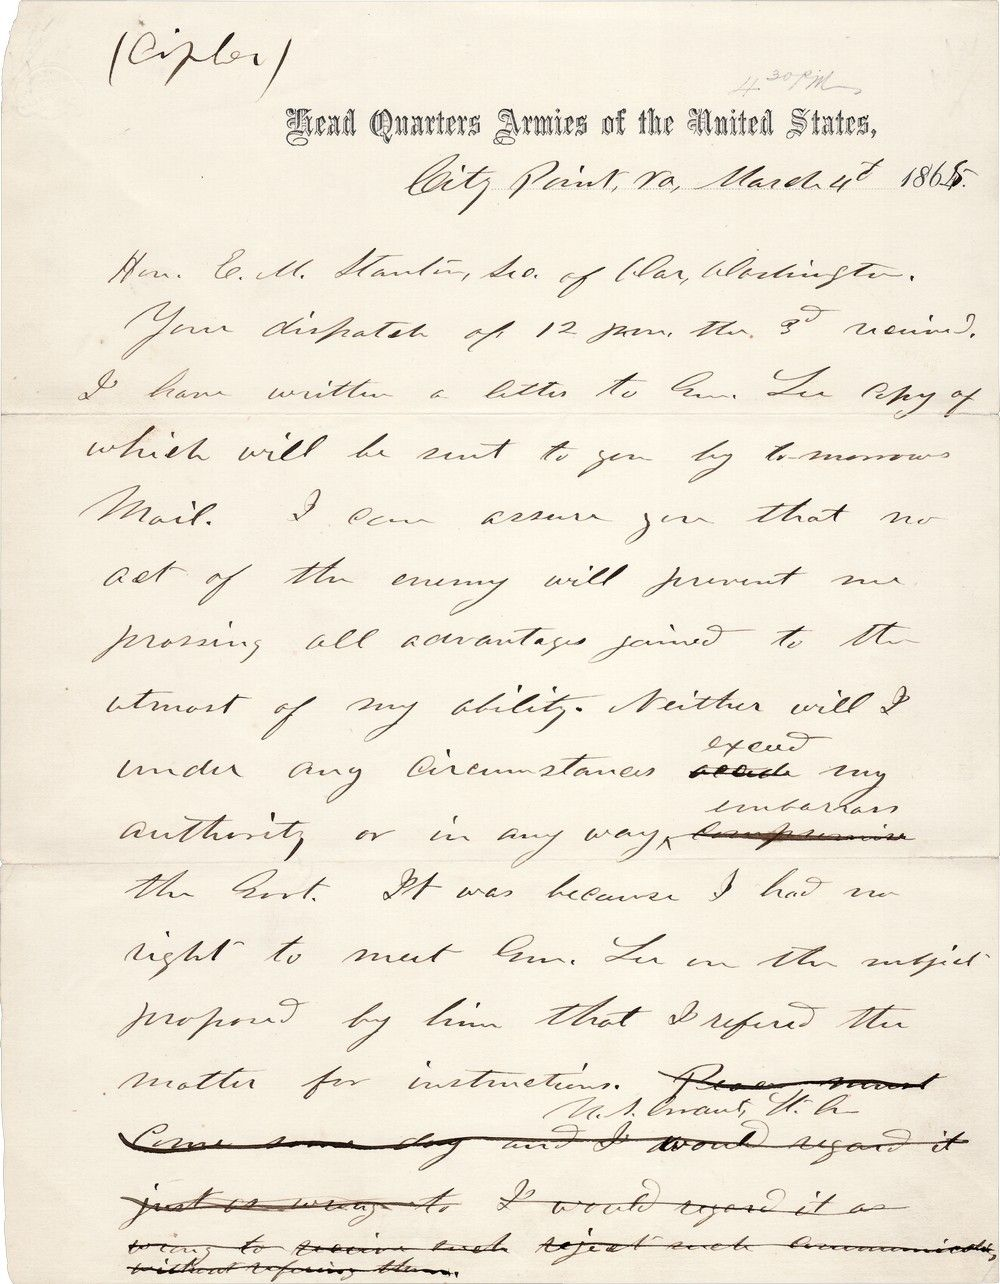 At the behest of President Lincoln, General Grant Decline's Lee's Suggestion of Armistice Negotiations